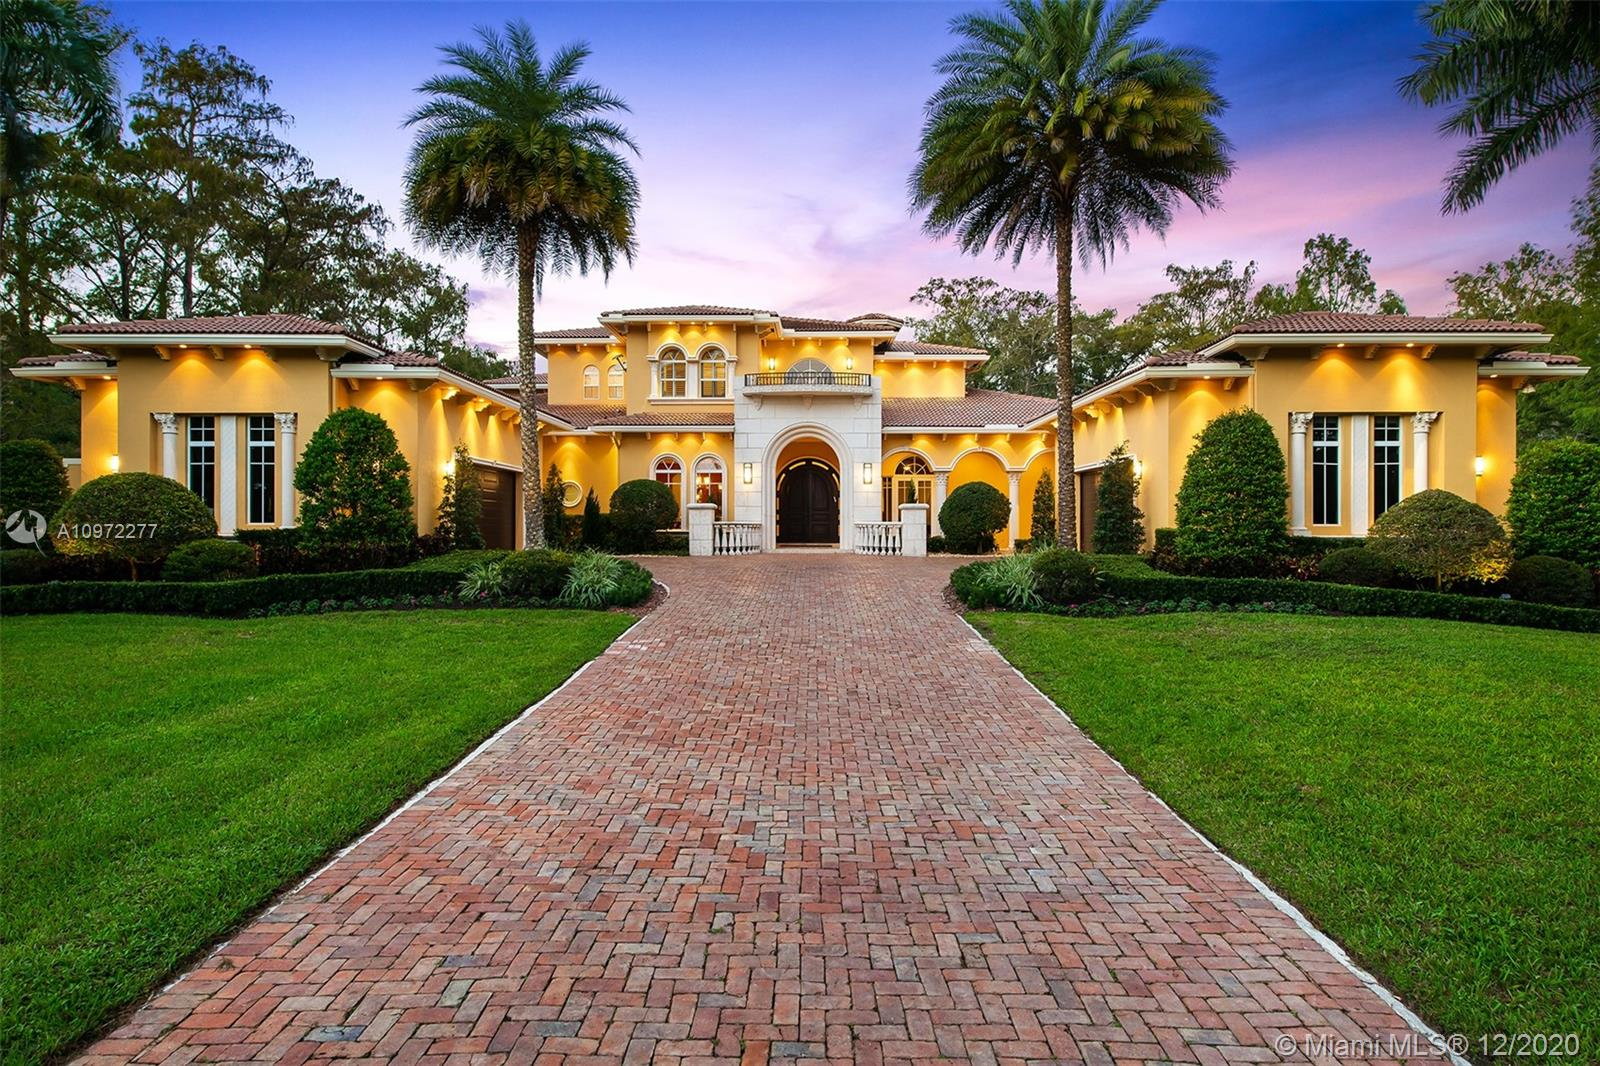 Welcome to one of the most Prestigious Estate nestled into desirable BBB Ranches. On almost 70,000 square feet of luscious, gated grounds this home offers 6 Bedrooms, 7 Bathrooms, an Office, Media Room, Loft, & Guest House. When first entering this beautiful estate, be greeted by grand foyer giving you a glimpse of the coffered ceilings/crown modeling throughout. The gourmet kitchen has quartz countertops & is fully equipped w/Viking appliances. The kitchen leads to the cozy family/dining room. This connects you to the media room that is perfect for the current pandemic, allowing you to enjoy a movie without having to leave the home. Breathtaking Lanai w/summer kitchen which overlooks the resort style pool and spa. This comfy family home is the ideal spot your Family will love.